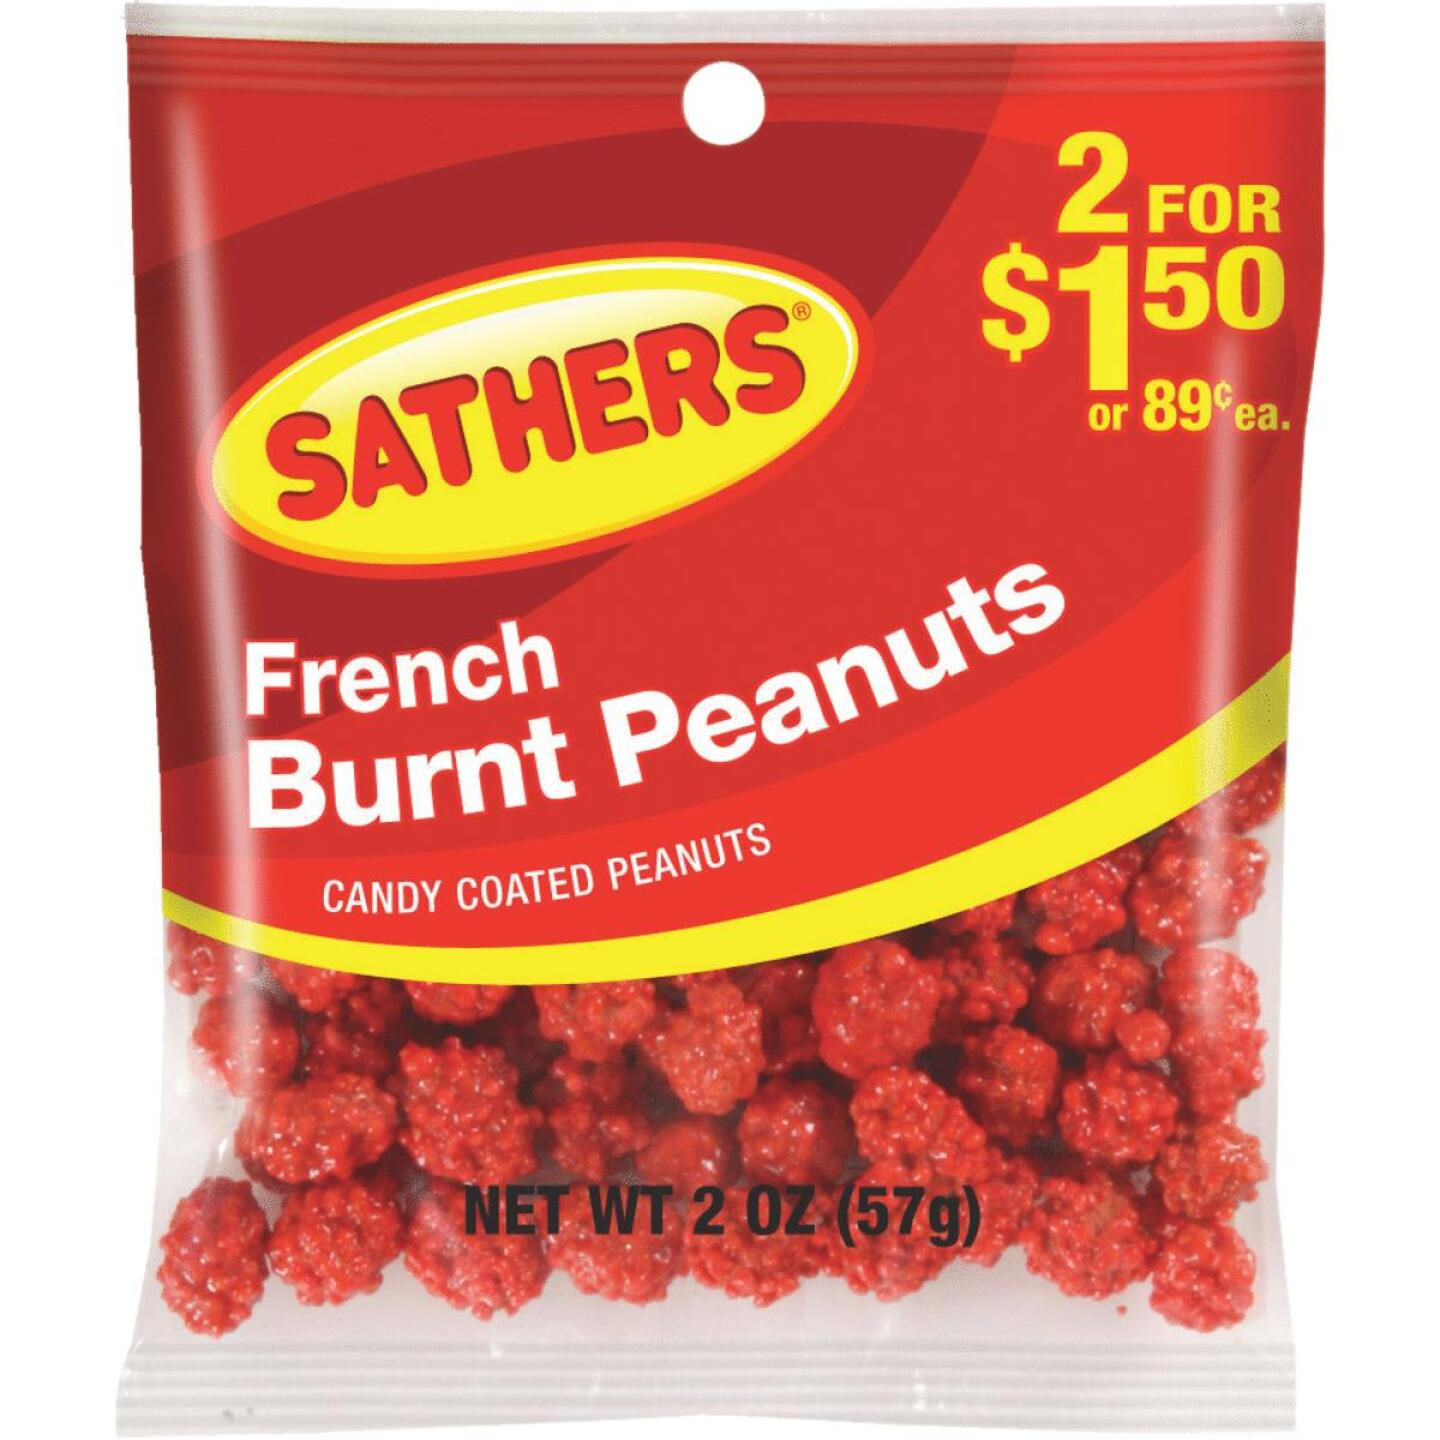 Sathers 2 Oz. French Burnt Peanuts Image 1